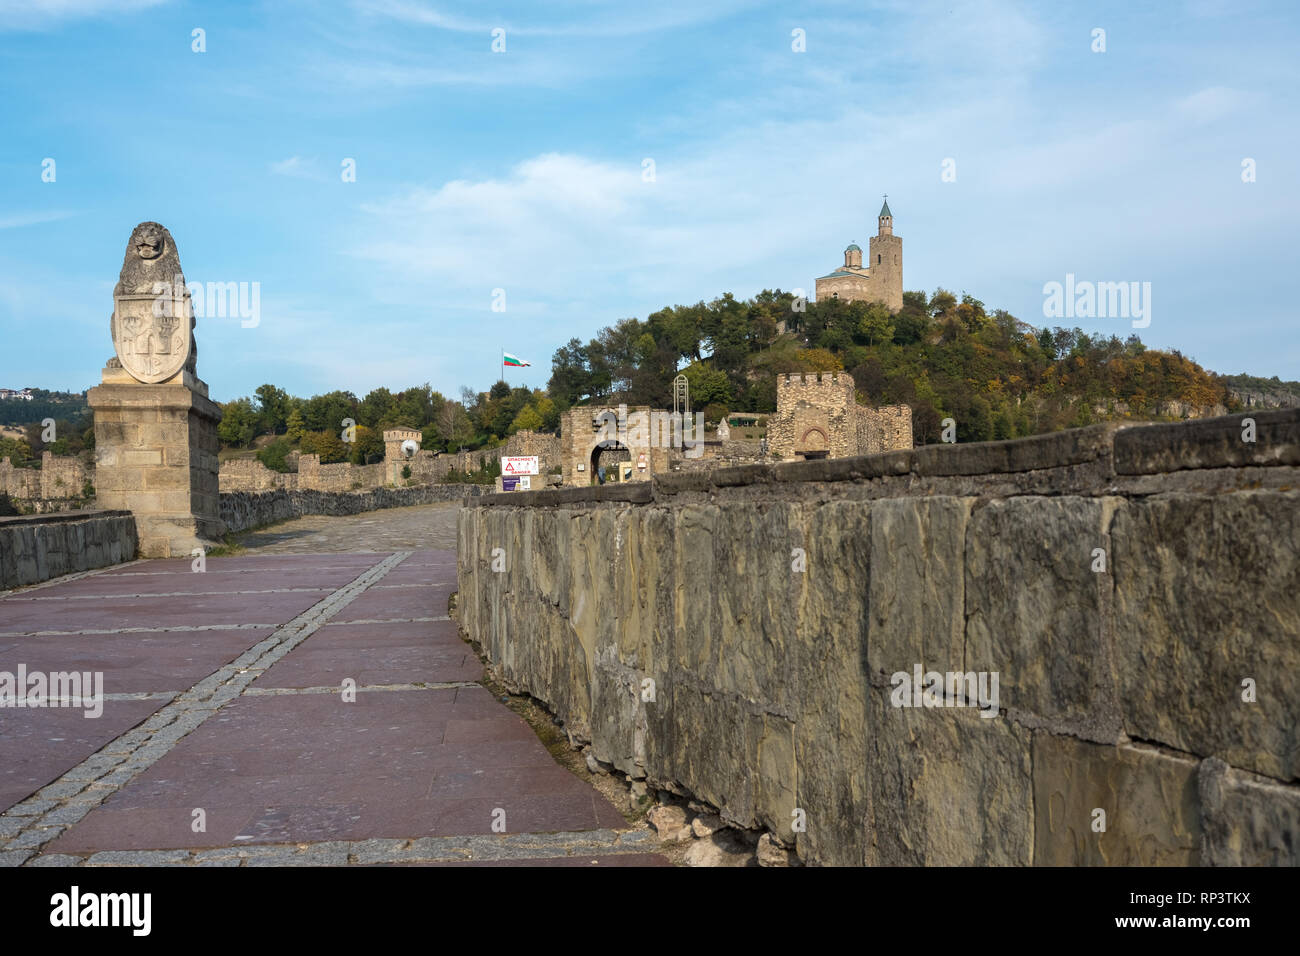 Looking toward Ascension of Christ Patriarchal Church within thick stone walls of Tsarevets Fortress in Veliko Tarnovo, Bulgaria. Stock Photo